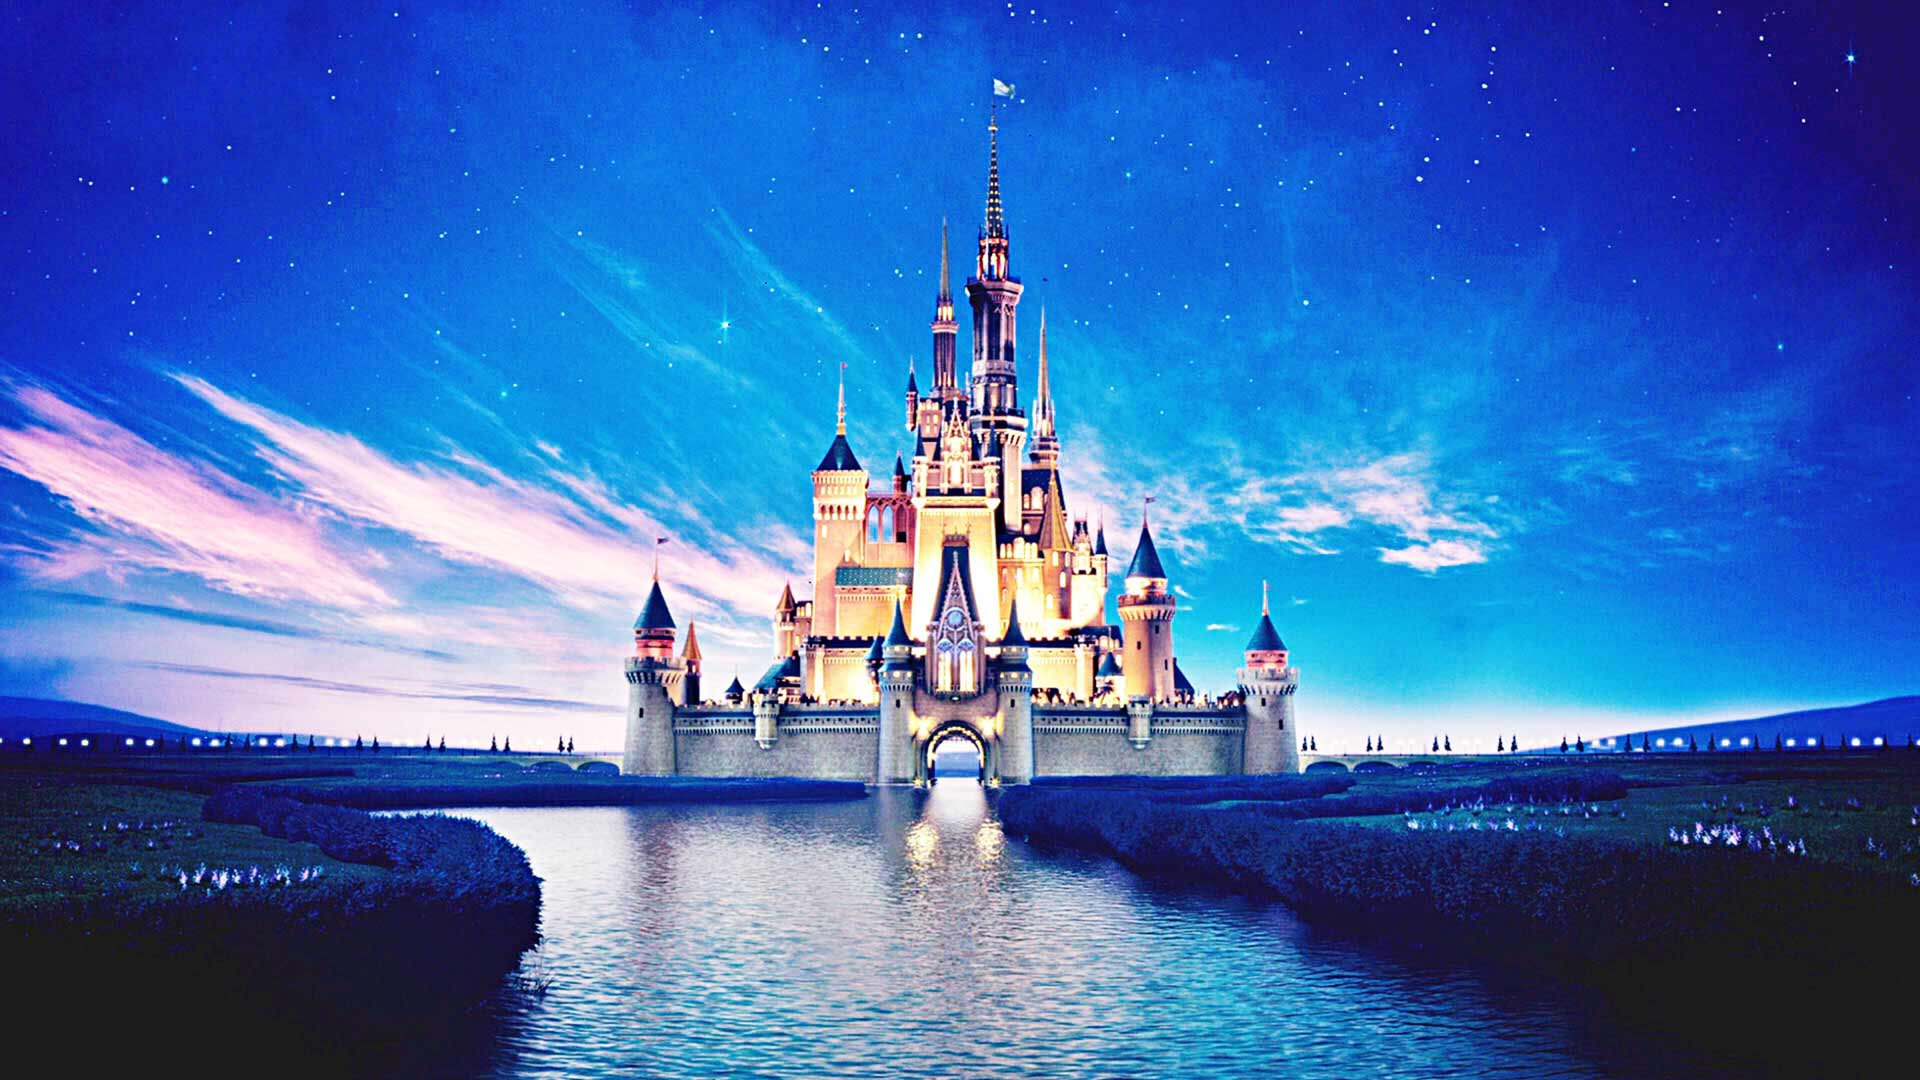 Disney Wallpapers HD 1920x1080